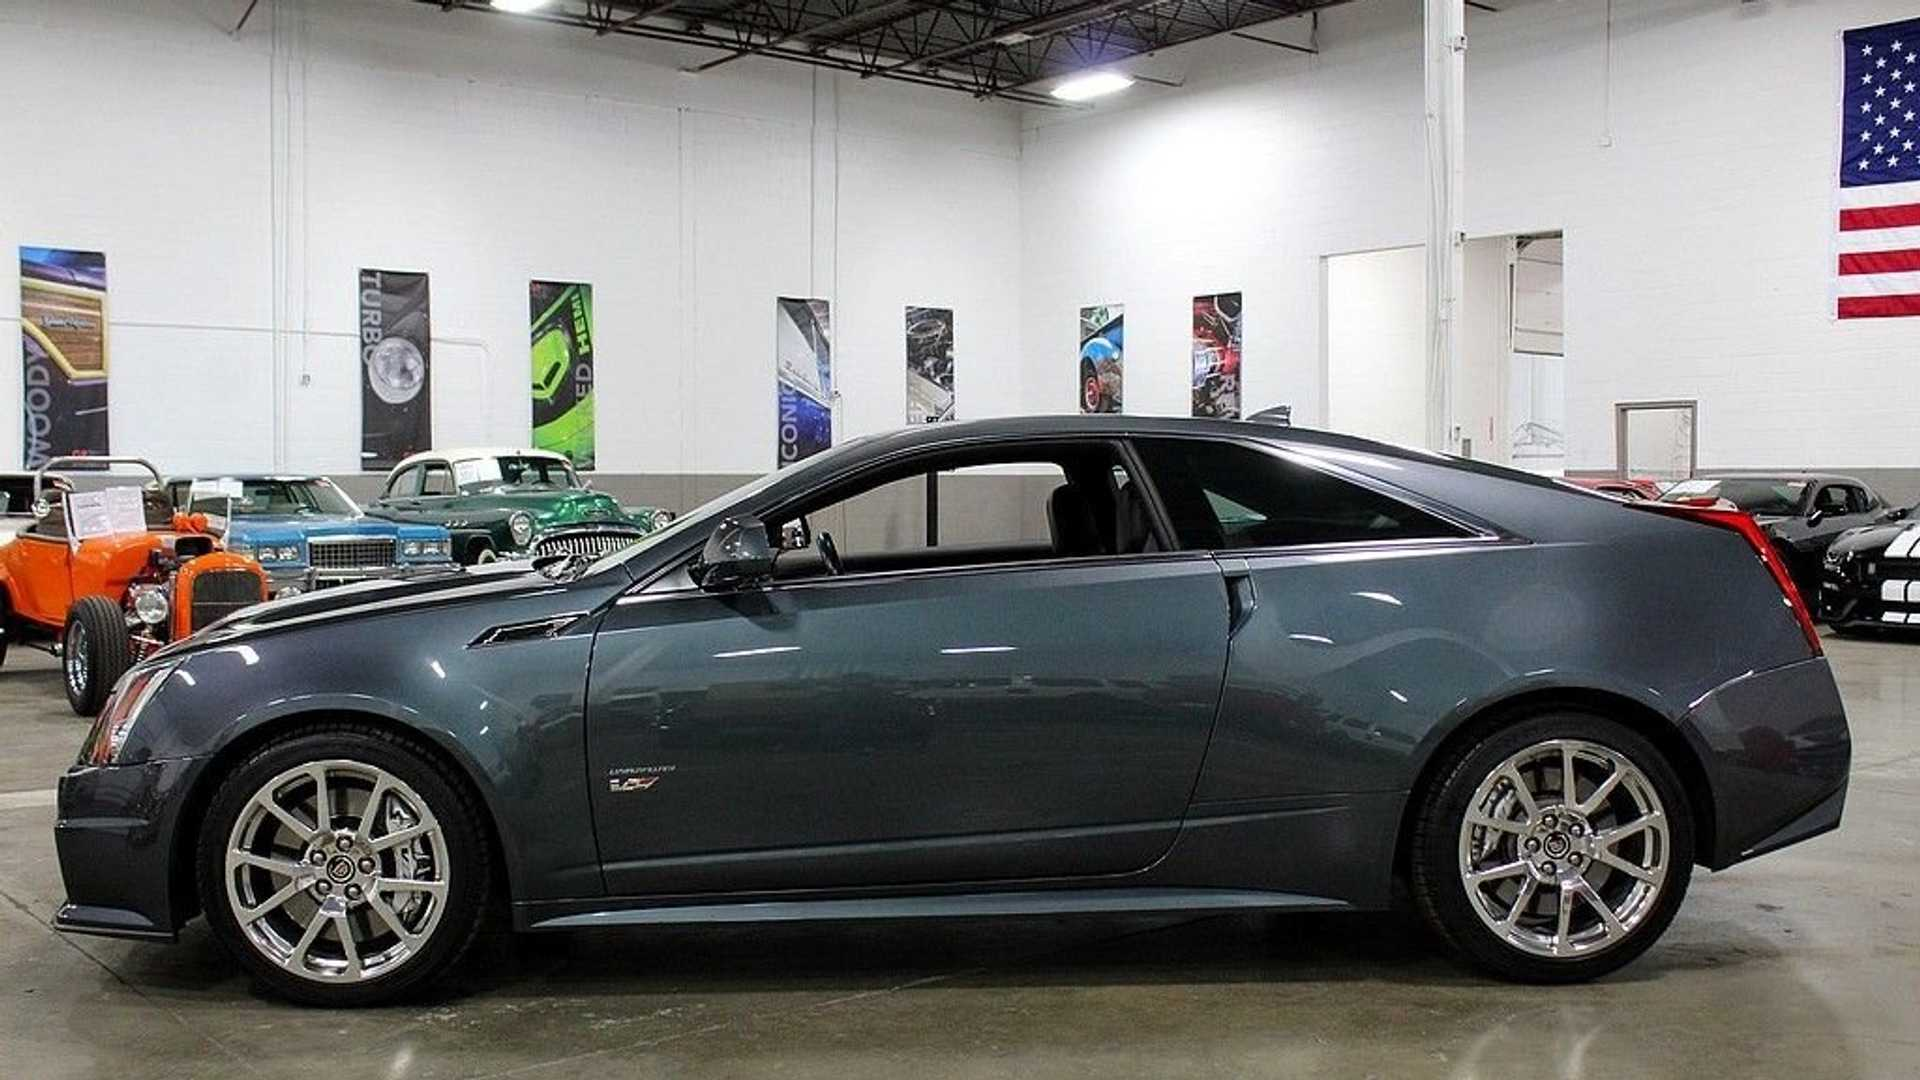 Own This 2011 Cadillac Cts V Full Of Supercharged Goodness Motorious